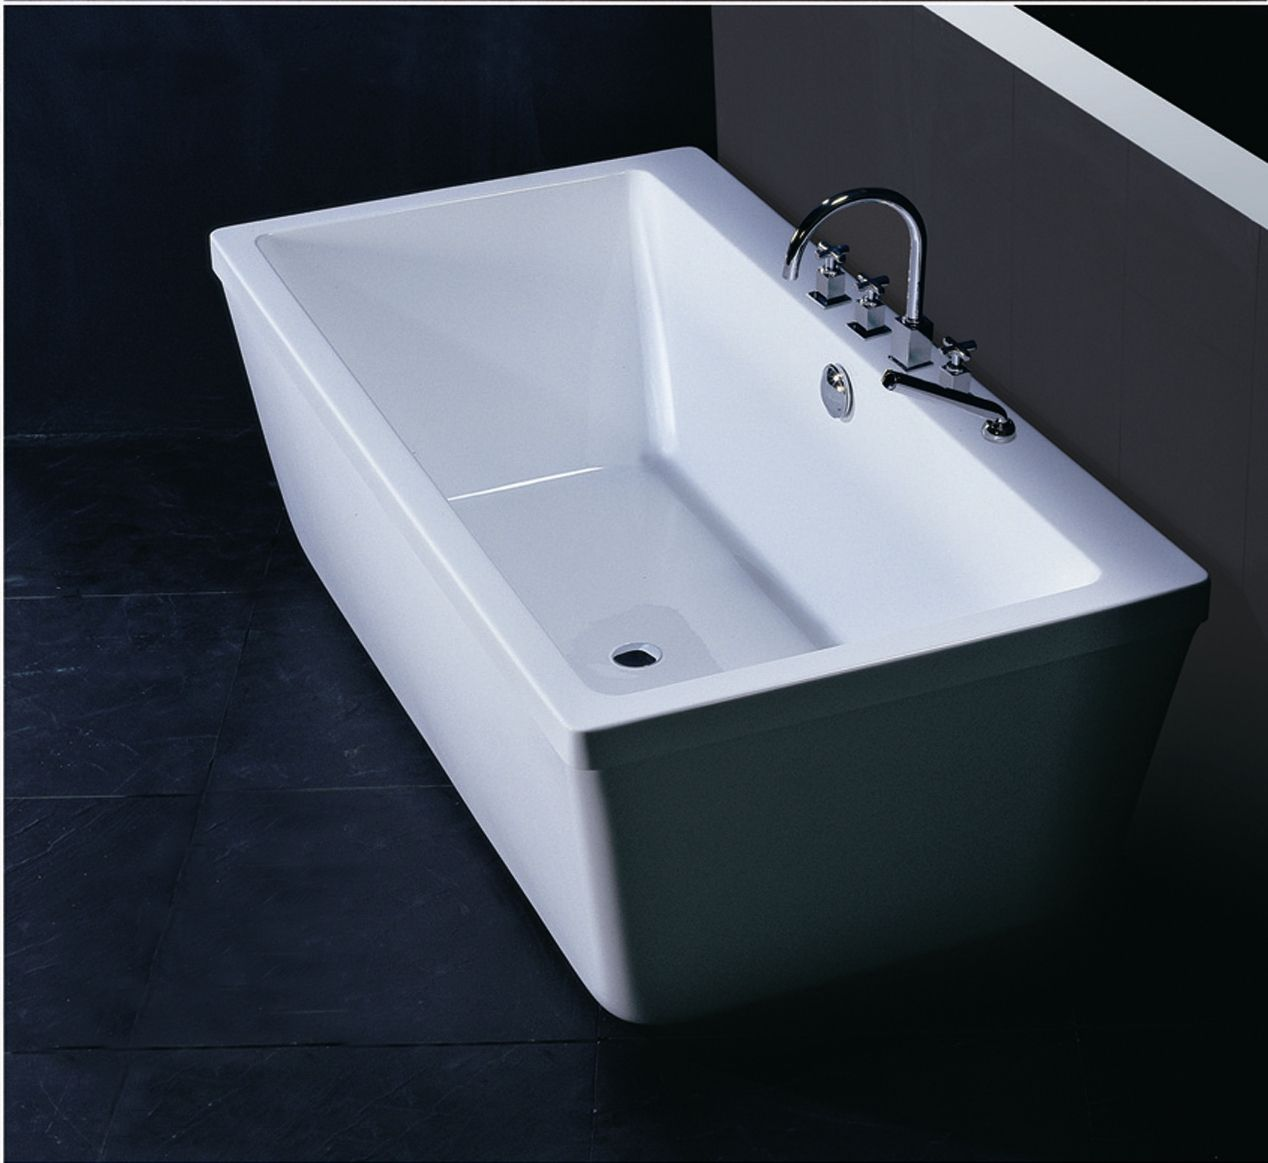 Neptune Amaze rectangular bathtub is freestanding and will \